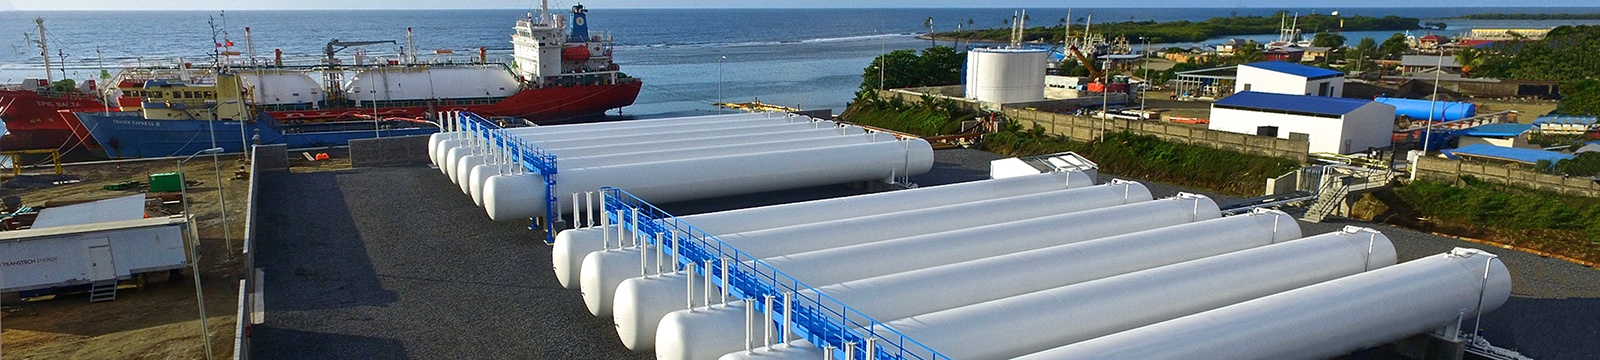 NGL LPG Propane Butane Marine Import Terminals for Ship & Barge Unloading - Engineering Construction Services EPC_.jpg